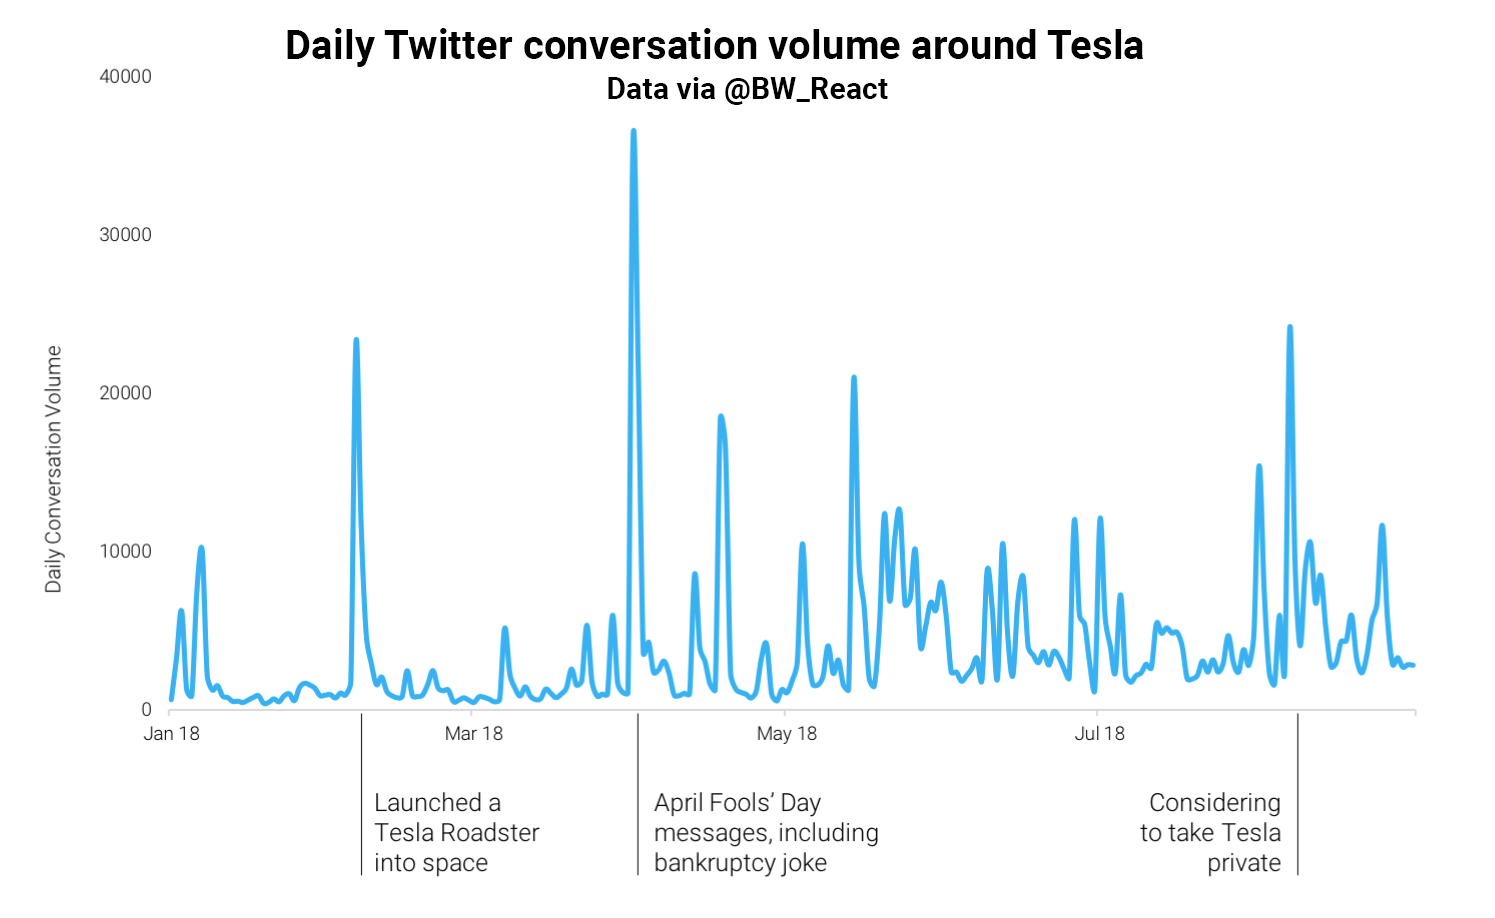 Does Twitter Conversation Have an Effect on Tesla's Stock Price? / Lena Höck